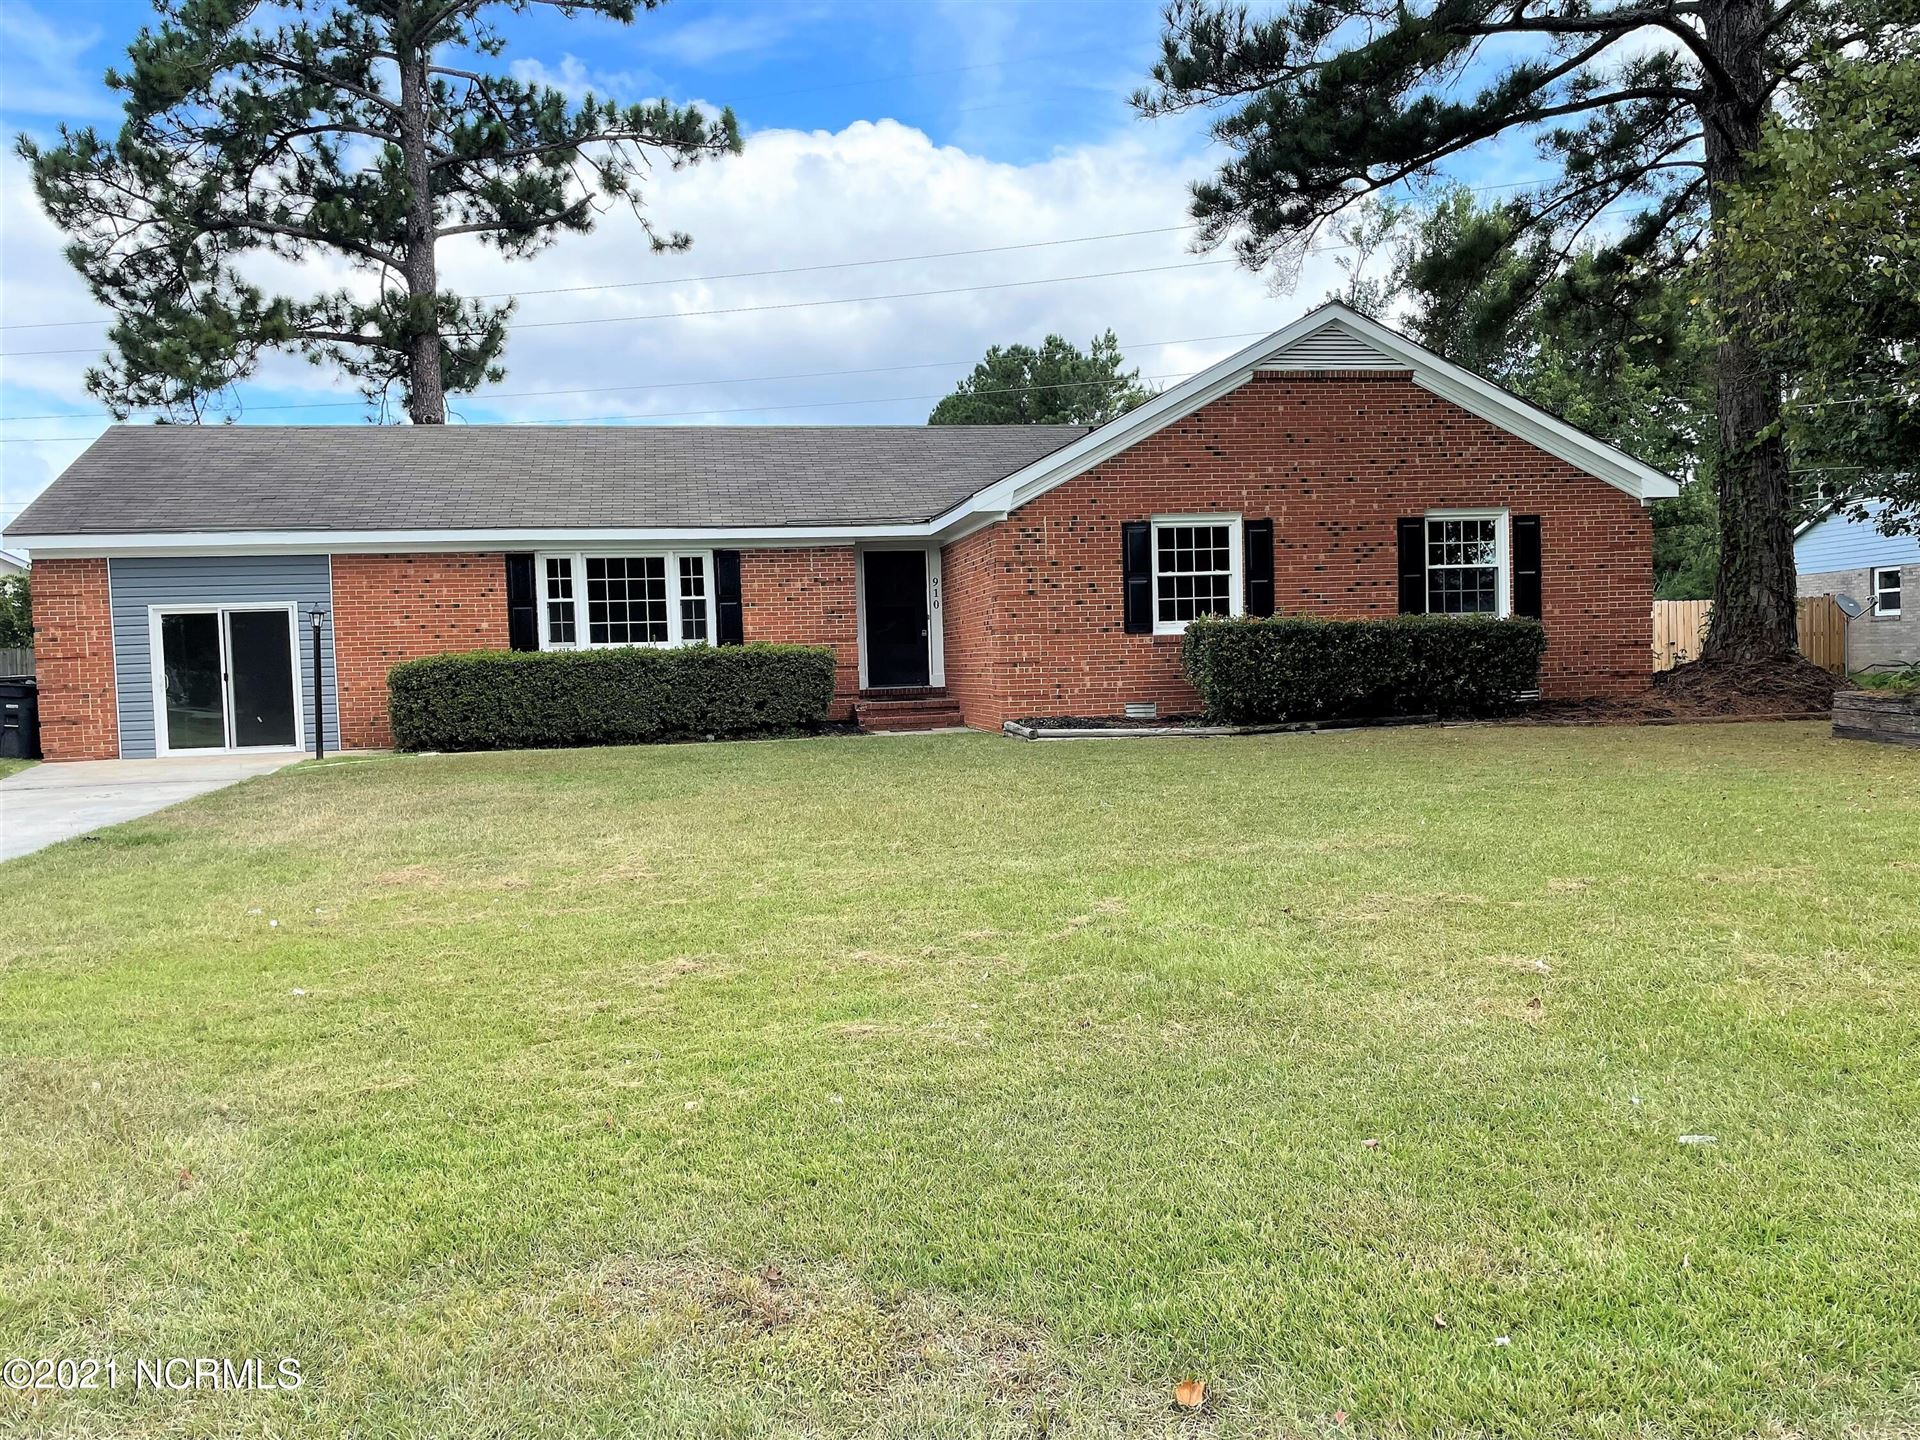 Photo of 910 Winchester Road, Jacksonville, NC 28546 (MLS # 100291667)